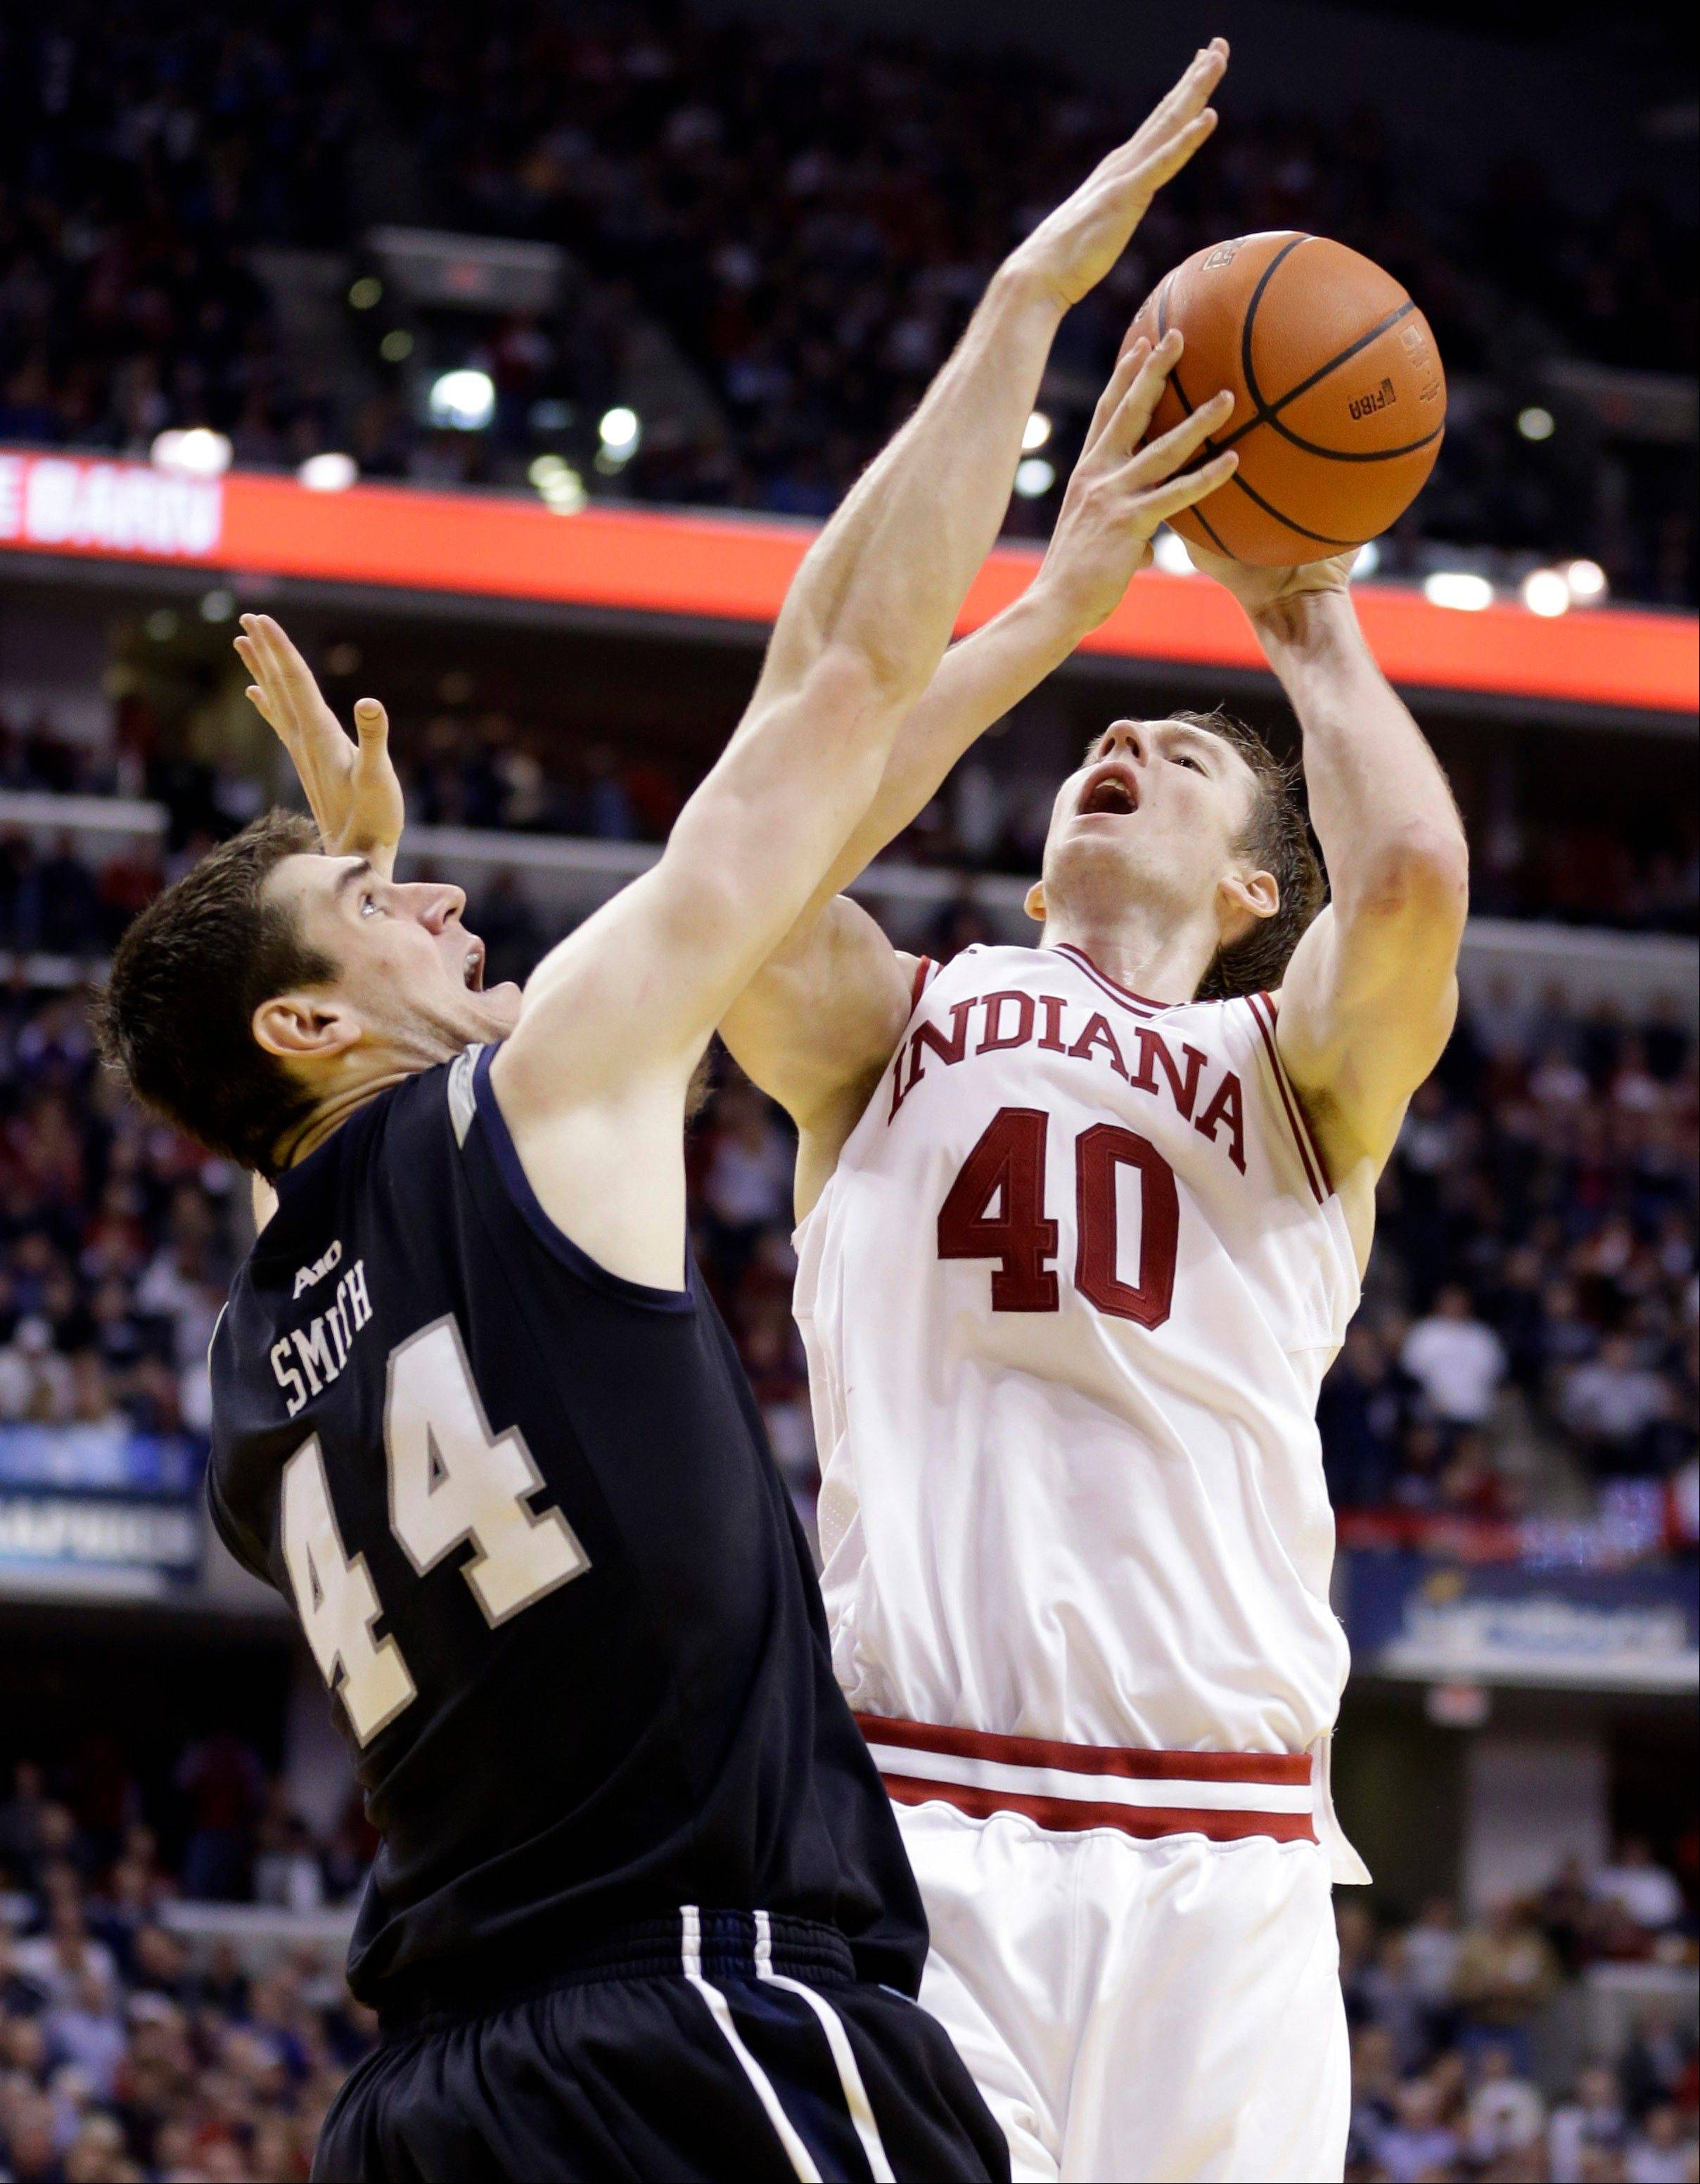 Indiana forward Cody Zeller, right, shoots over Butler center Andrew Smith in the second half of an NCAA college basketball game in Indianapolis on Saturday. Butler defeated Indiana 88-86 in overtime. Indiana's loss means Duke takes the top spot in the AP poll.